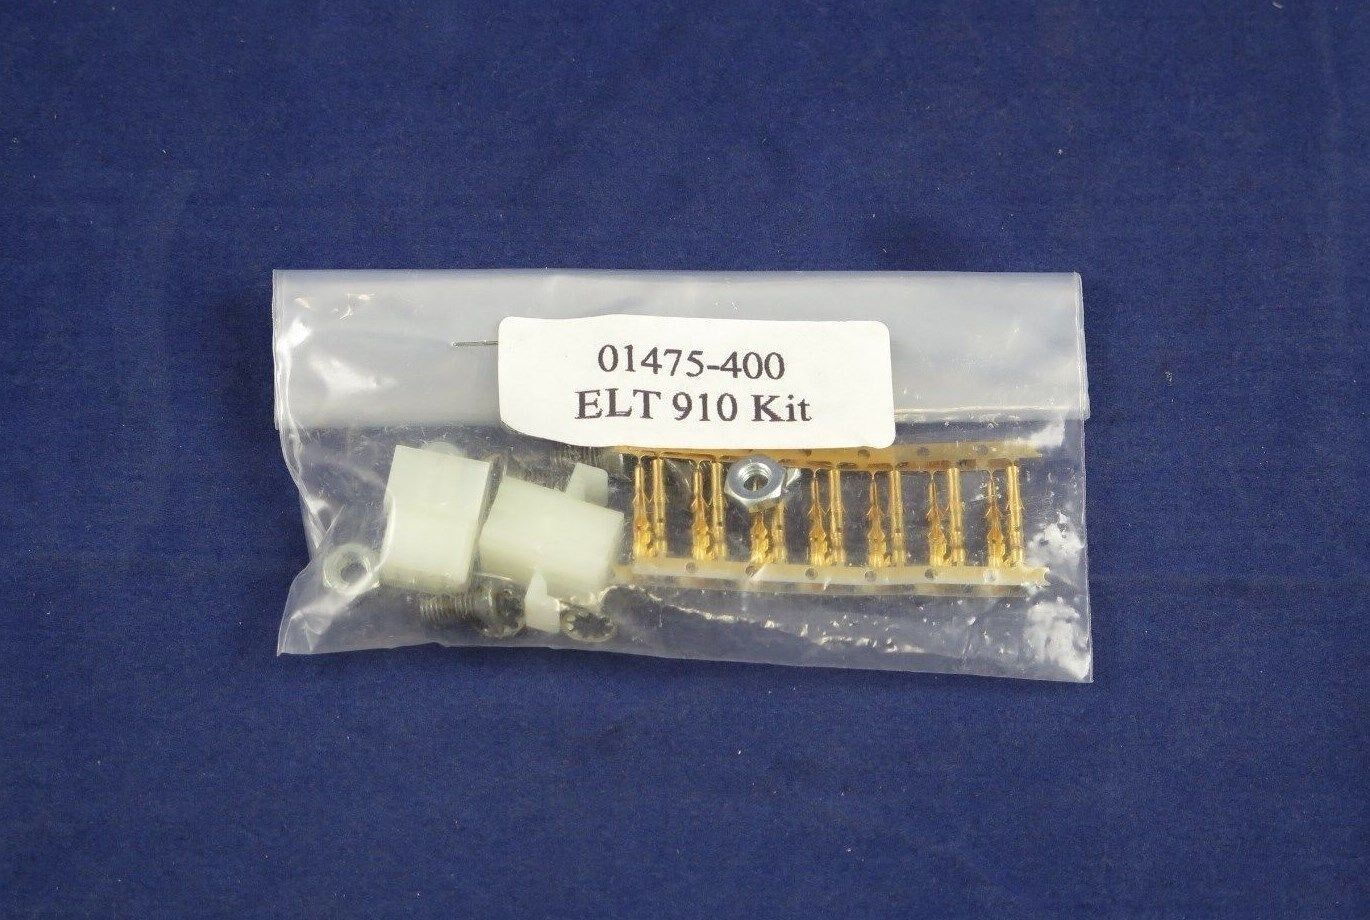 Lot of 2 Connector Kits for Narco ELT 910 P/N 01475-0400 New cond. w/ SVC. tags